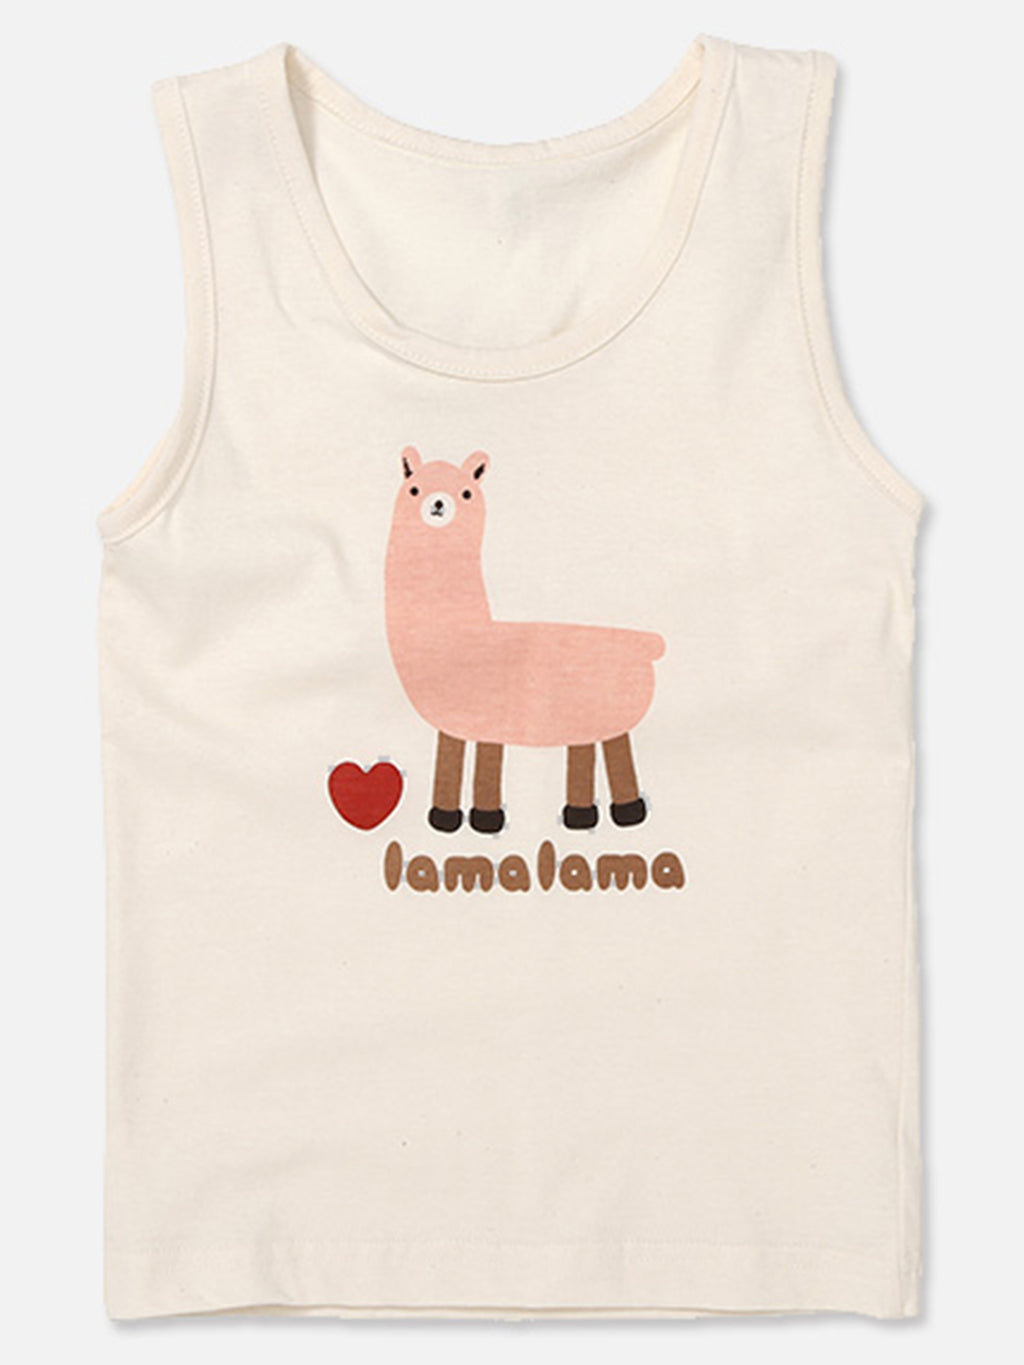 Toddler Girls Undershirt Tank Top - HiOrganic